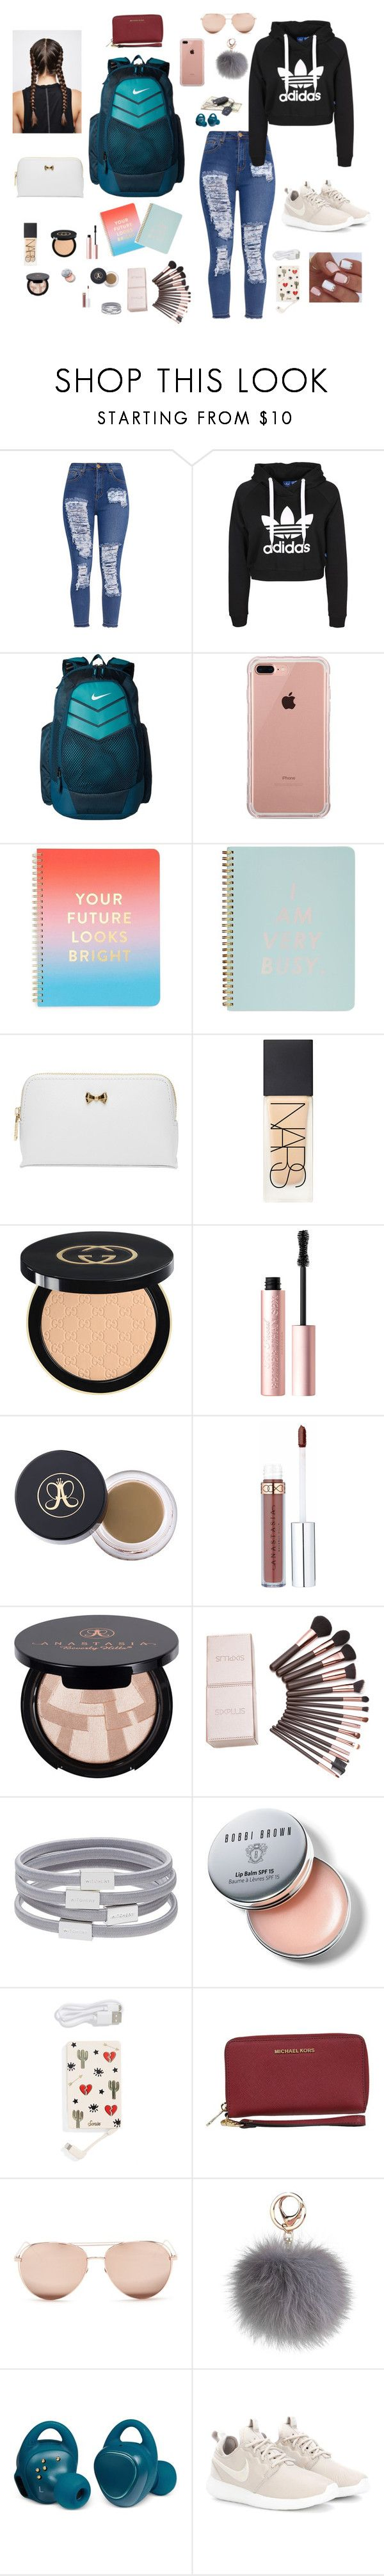 """""""sophomore year"""" by gabriellaallen on Polyvore featuring NIKE, Belkin, ban.do, Ted Baker, NARS Cosmetics, Gucci, Too Faced Cosmetics, Anastasia Beverly Hills, Witchery and Bobbi Brown Cosmetics"""